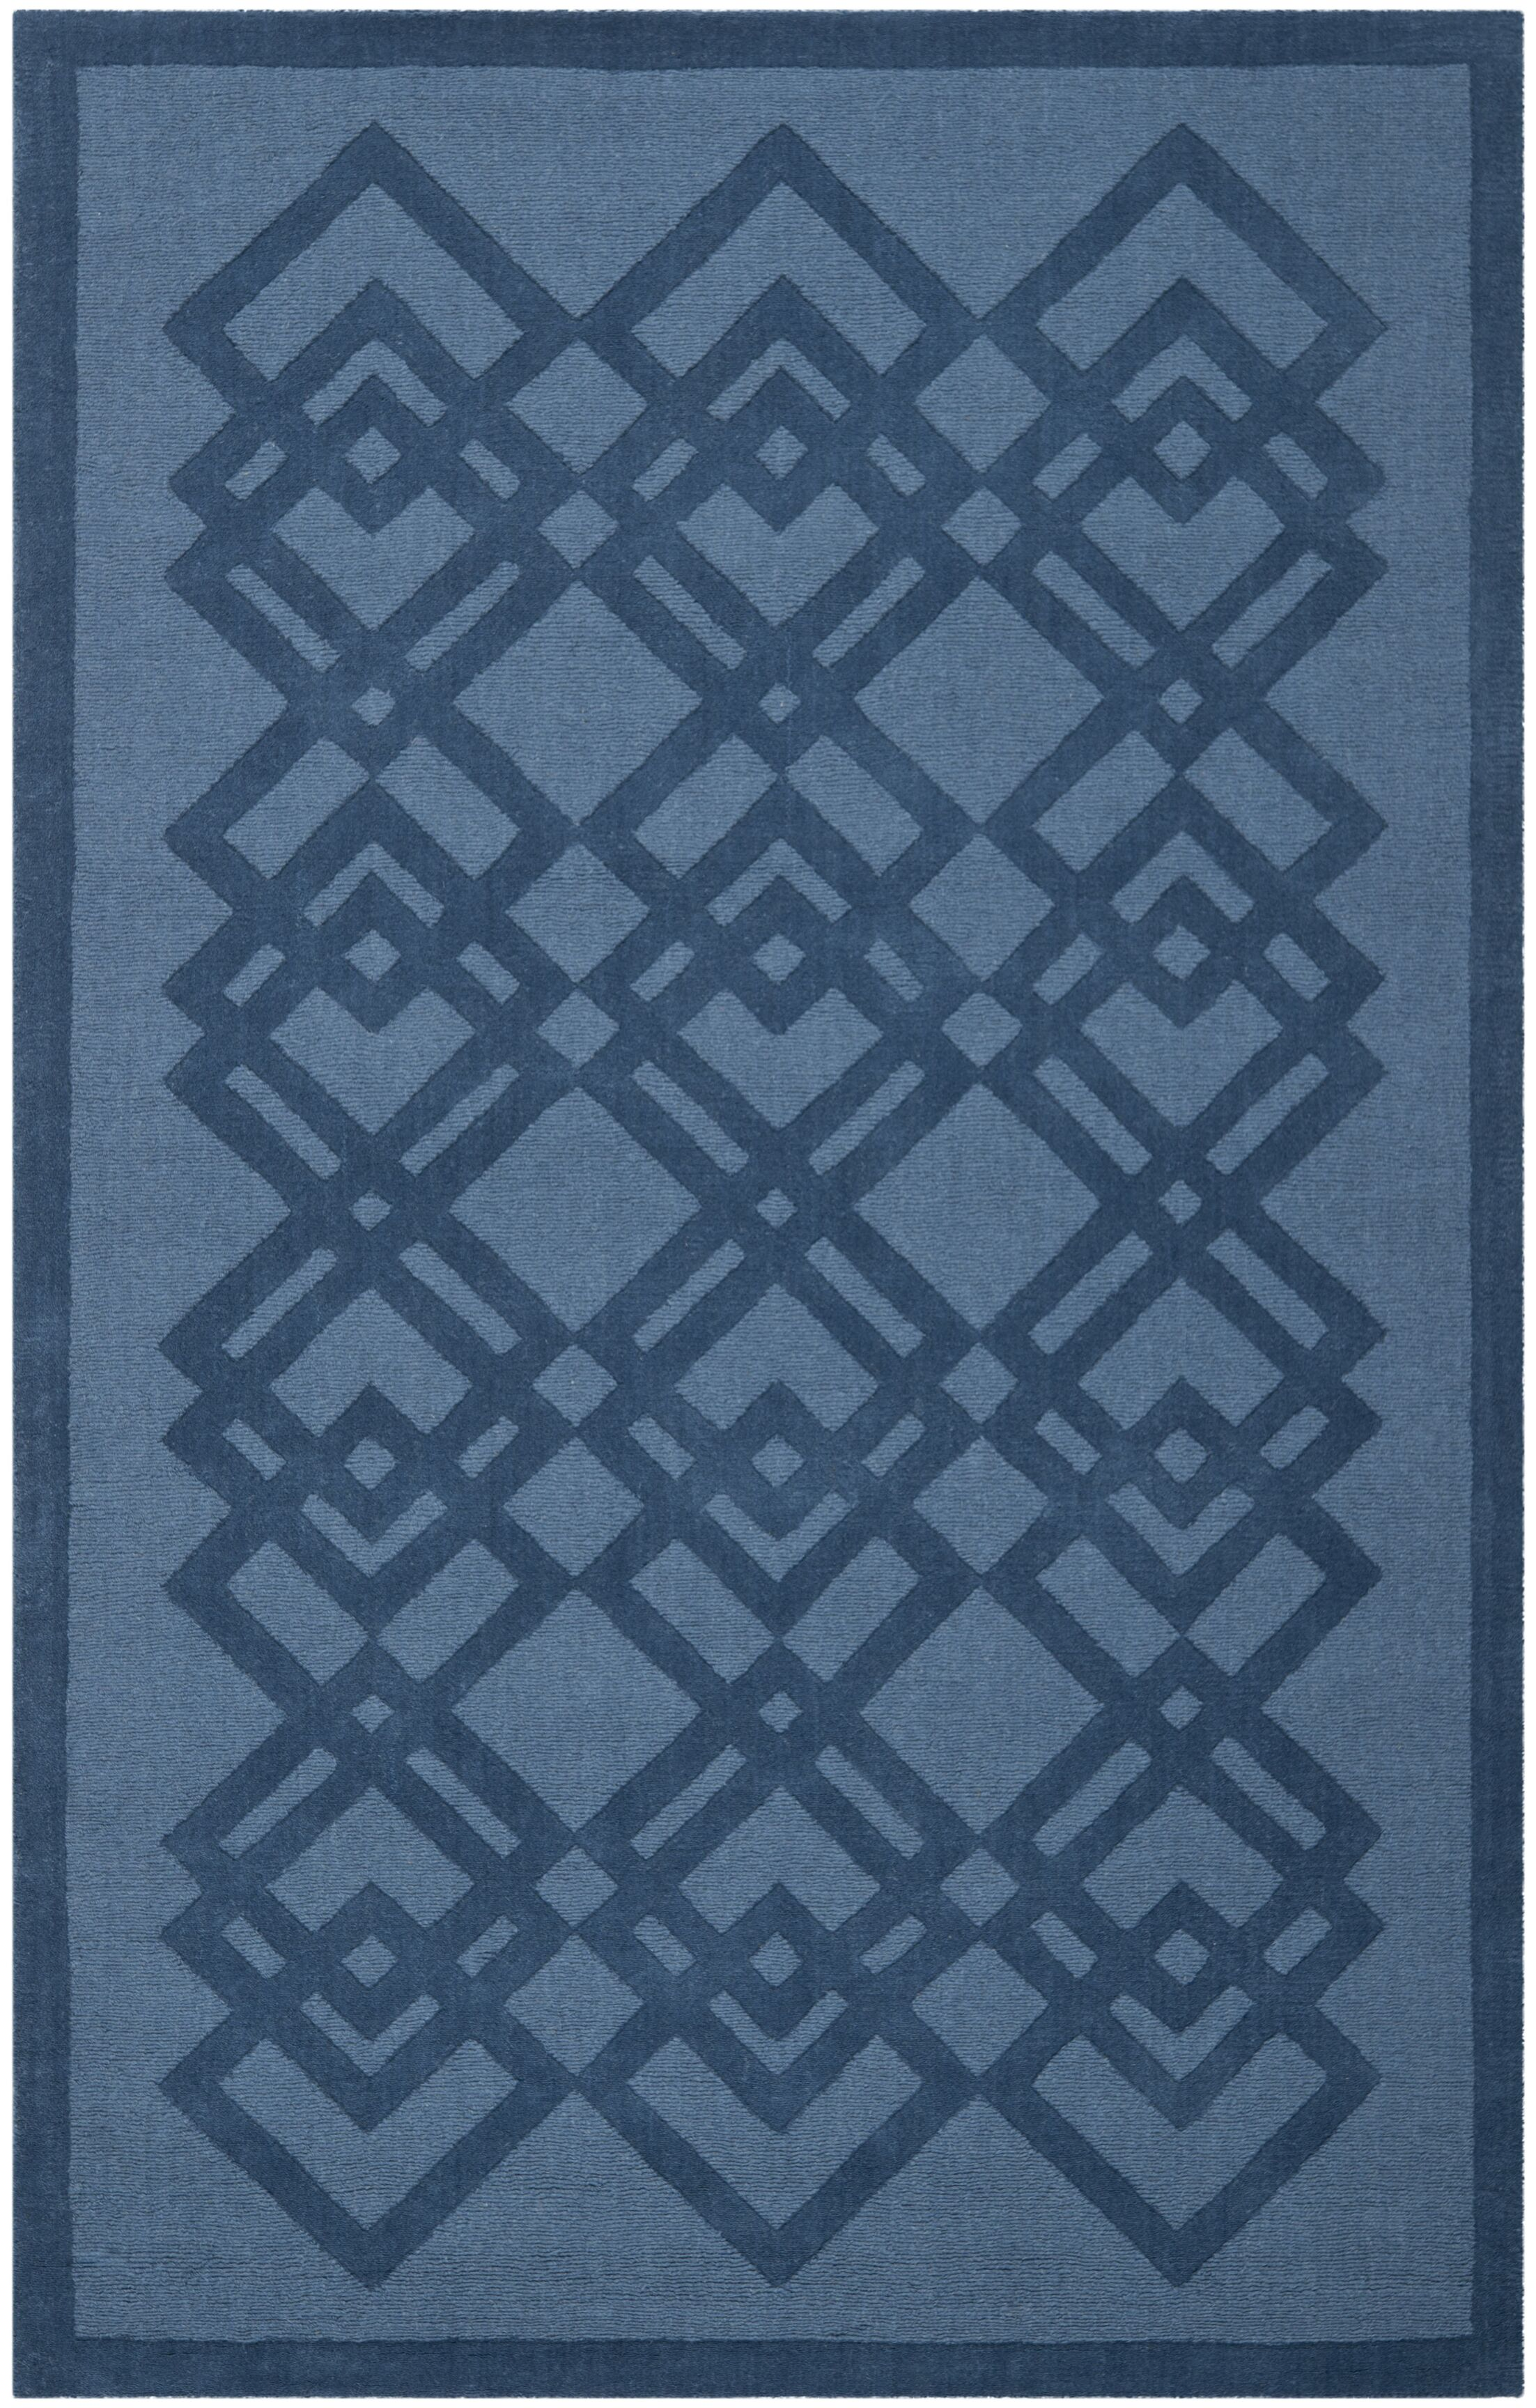 Viewpoint Carved Ink Area Rug Rug Size: Rectangle 8' x 10'